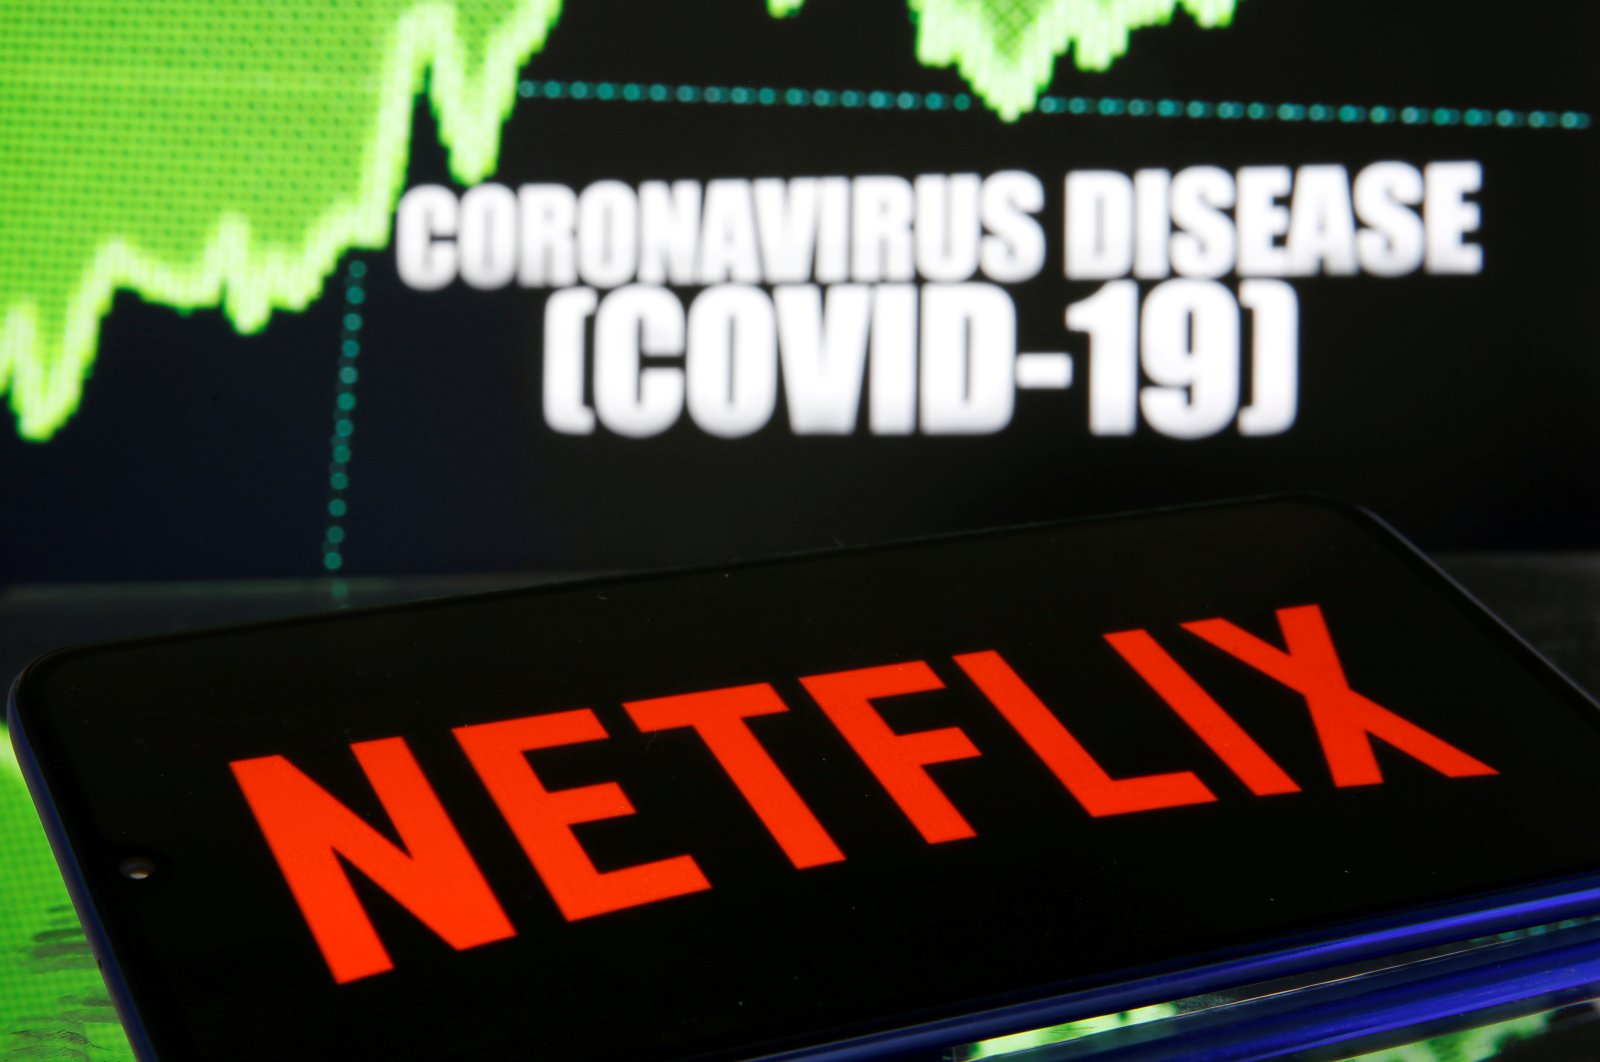 Netflix logo is seen in front of diplayed coronavirus disease (COVID-19) in this illustration taken March 19, 2020. (Reuters Photo)